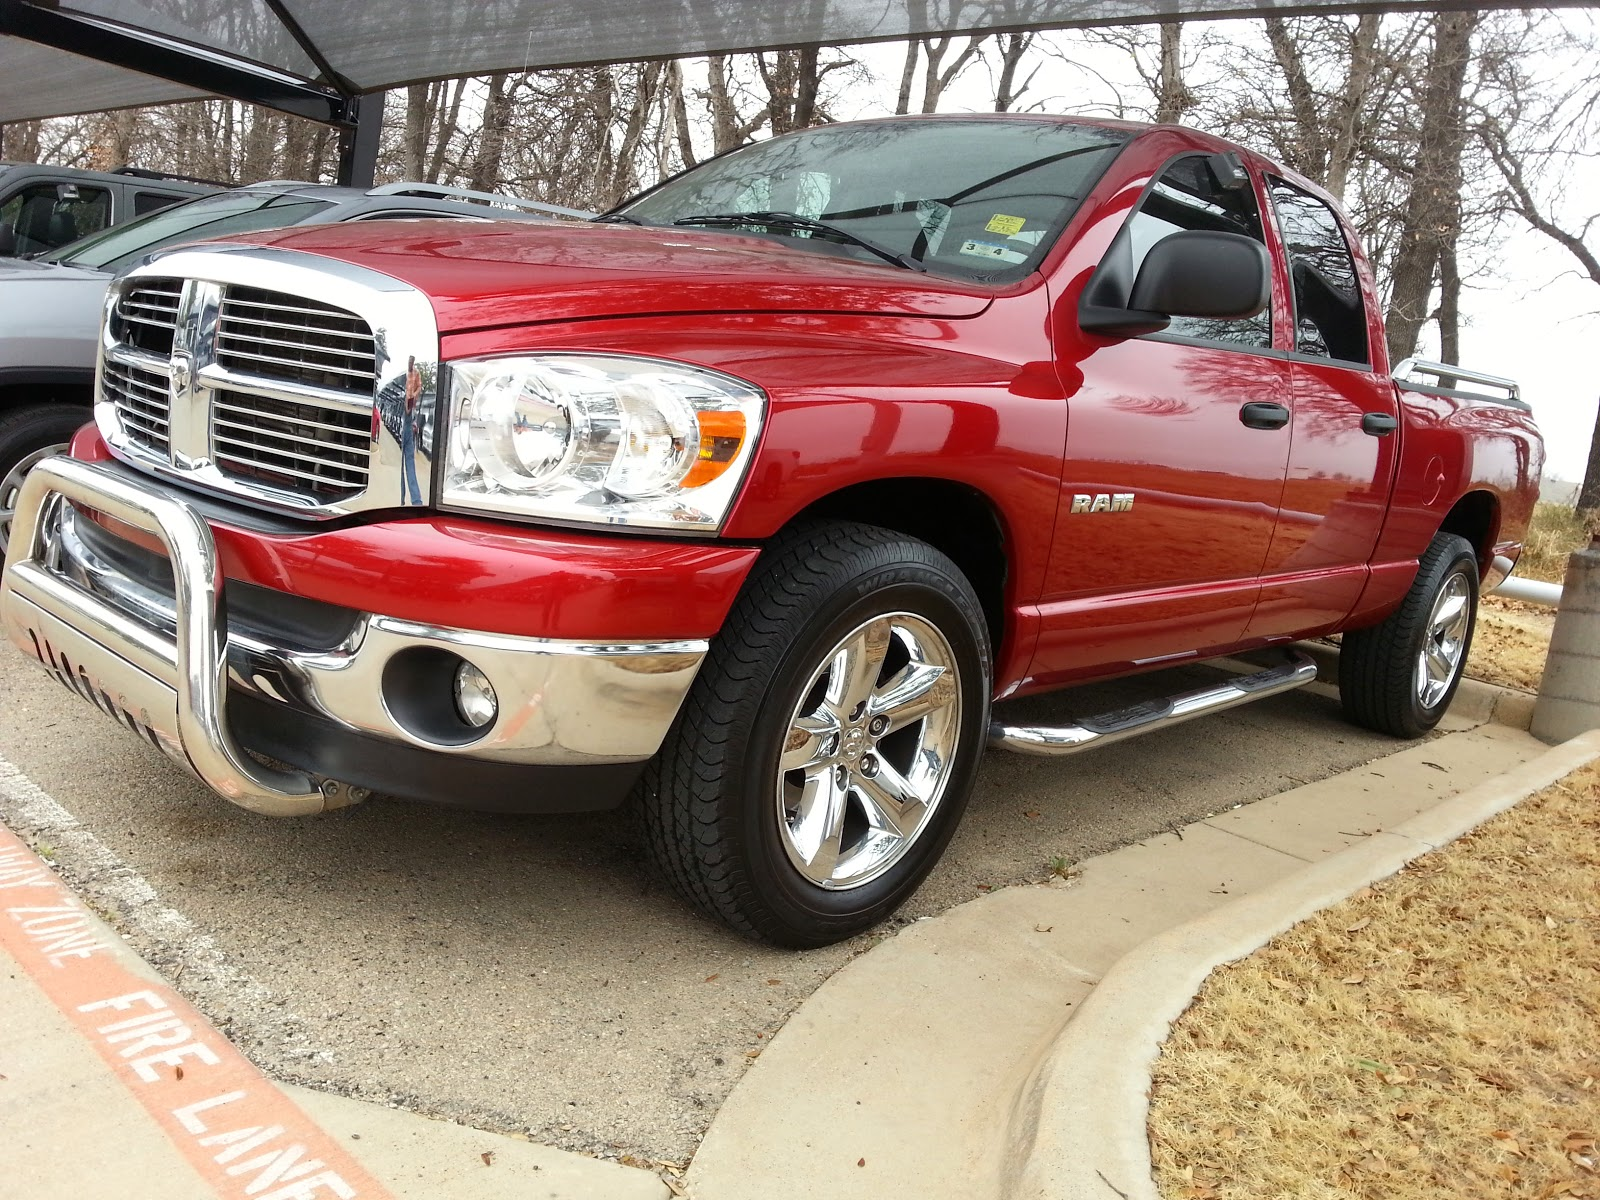 tdy sales 817 243 9840 for sale pre owned 2008 dodge ram 1500 red truck tdy sales new. Black Bedroom Furniture Sets. Home Design Ideas